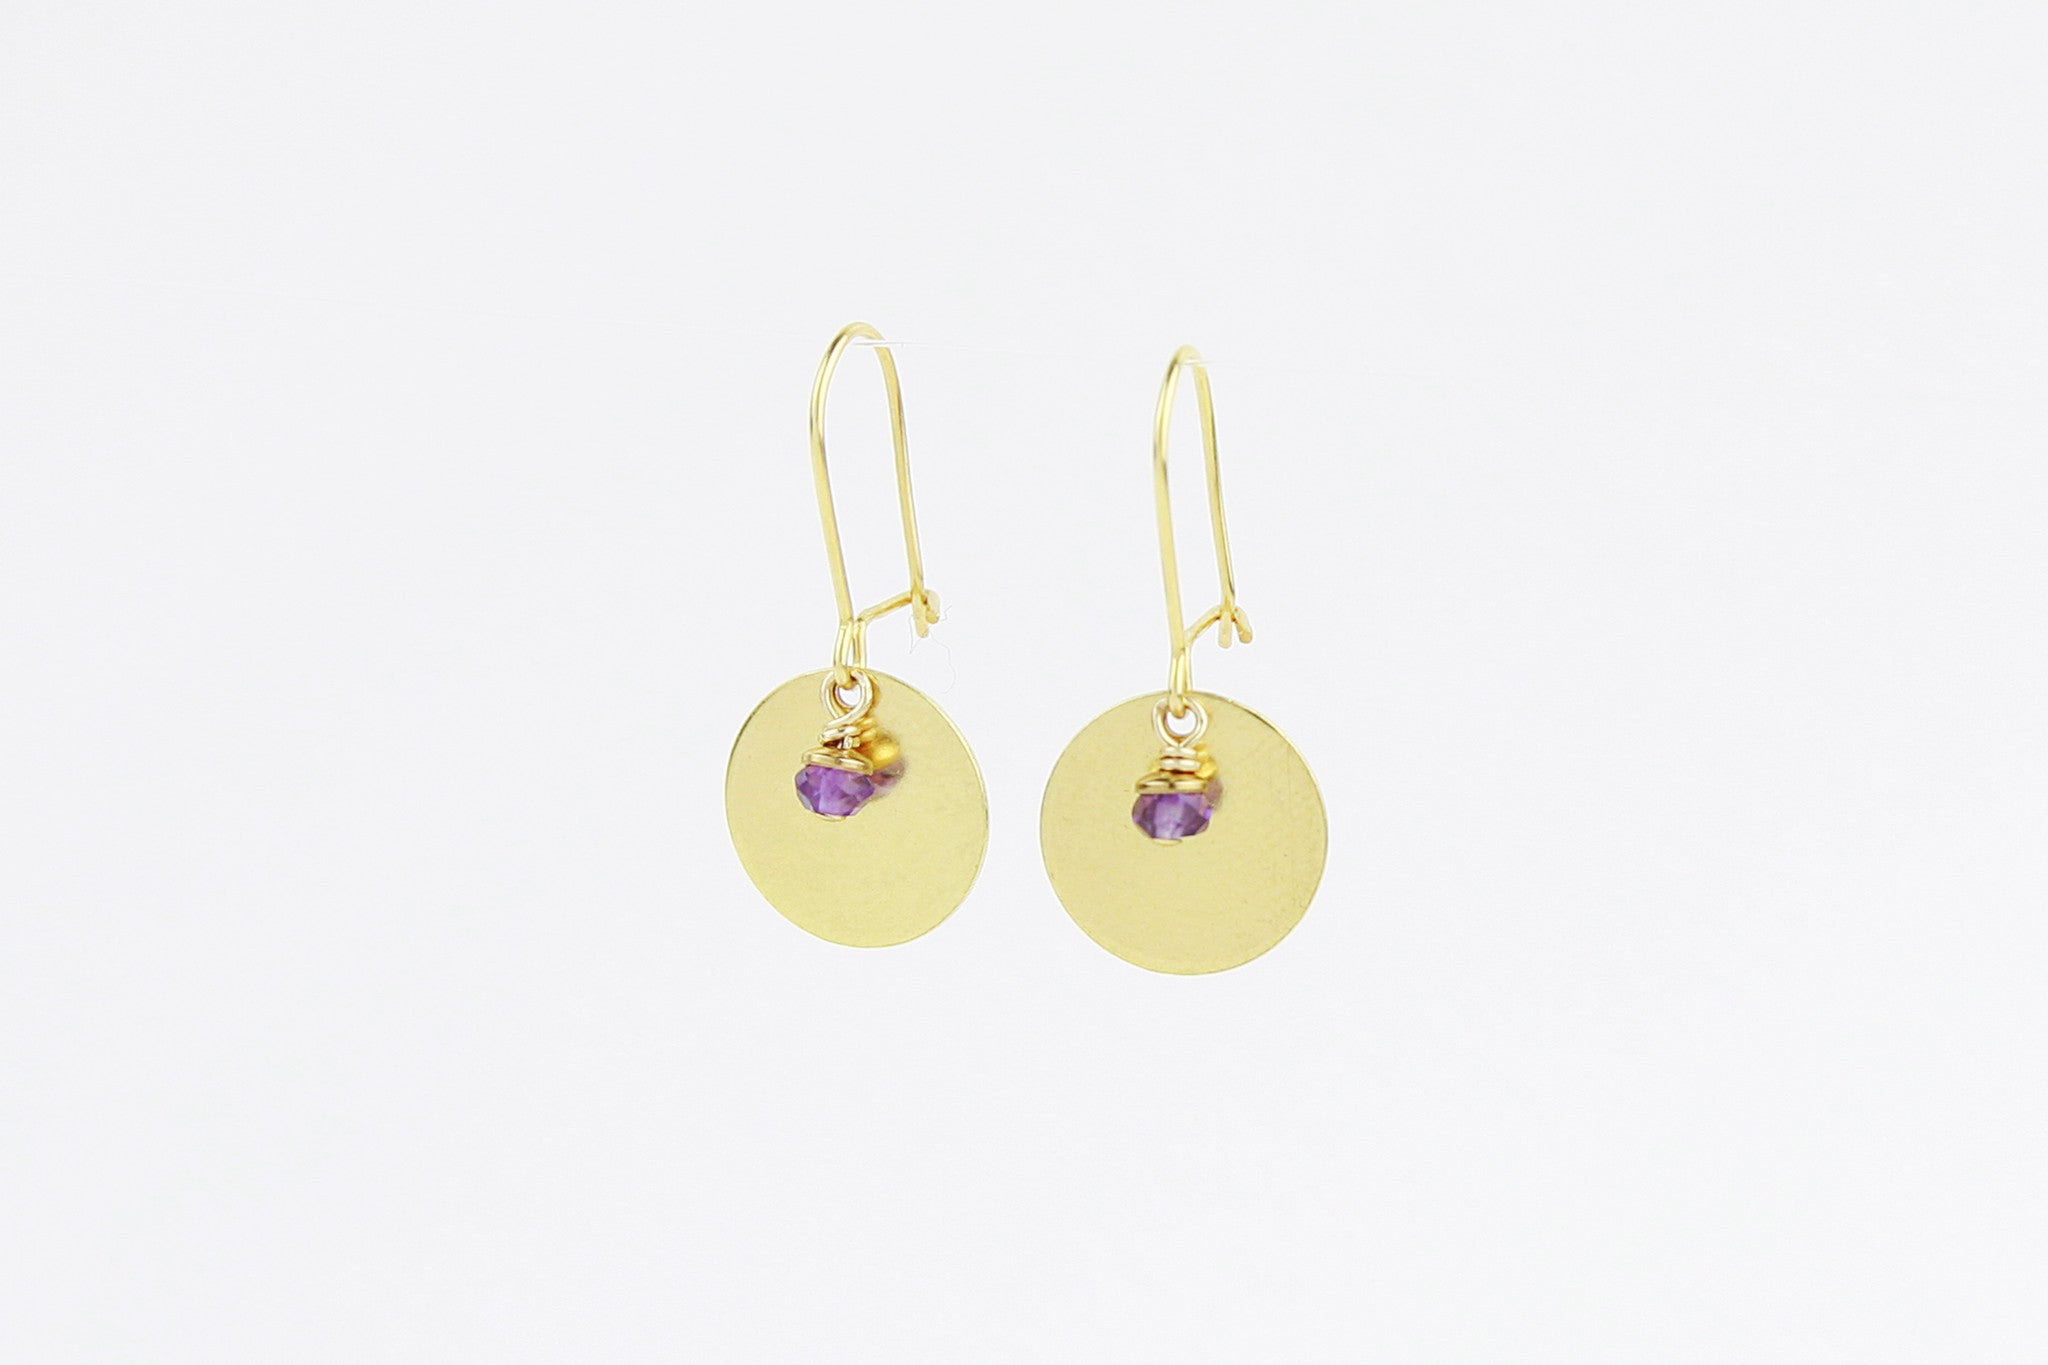 ....Ohrringe MEDIUM DISC 925 Sterling Silber vergoldet..Earrings MEDIUM DISC 925 Sterling Silver gold plated....